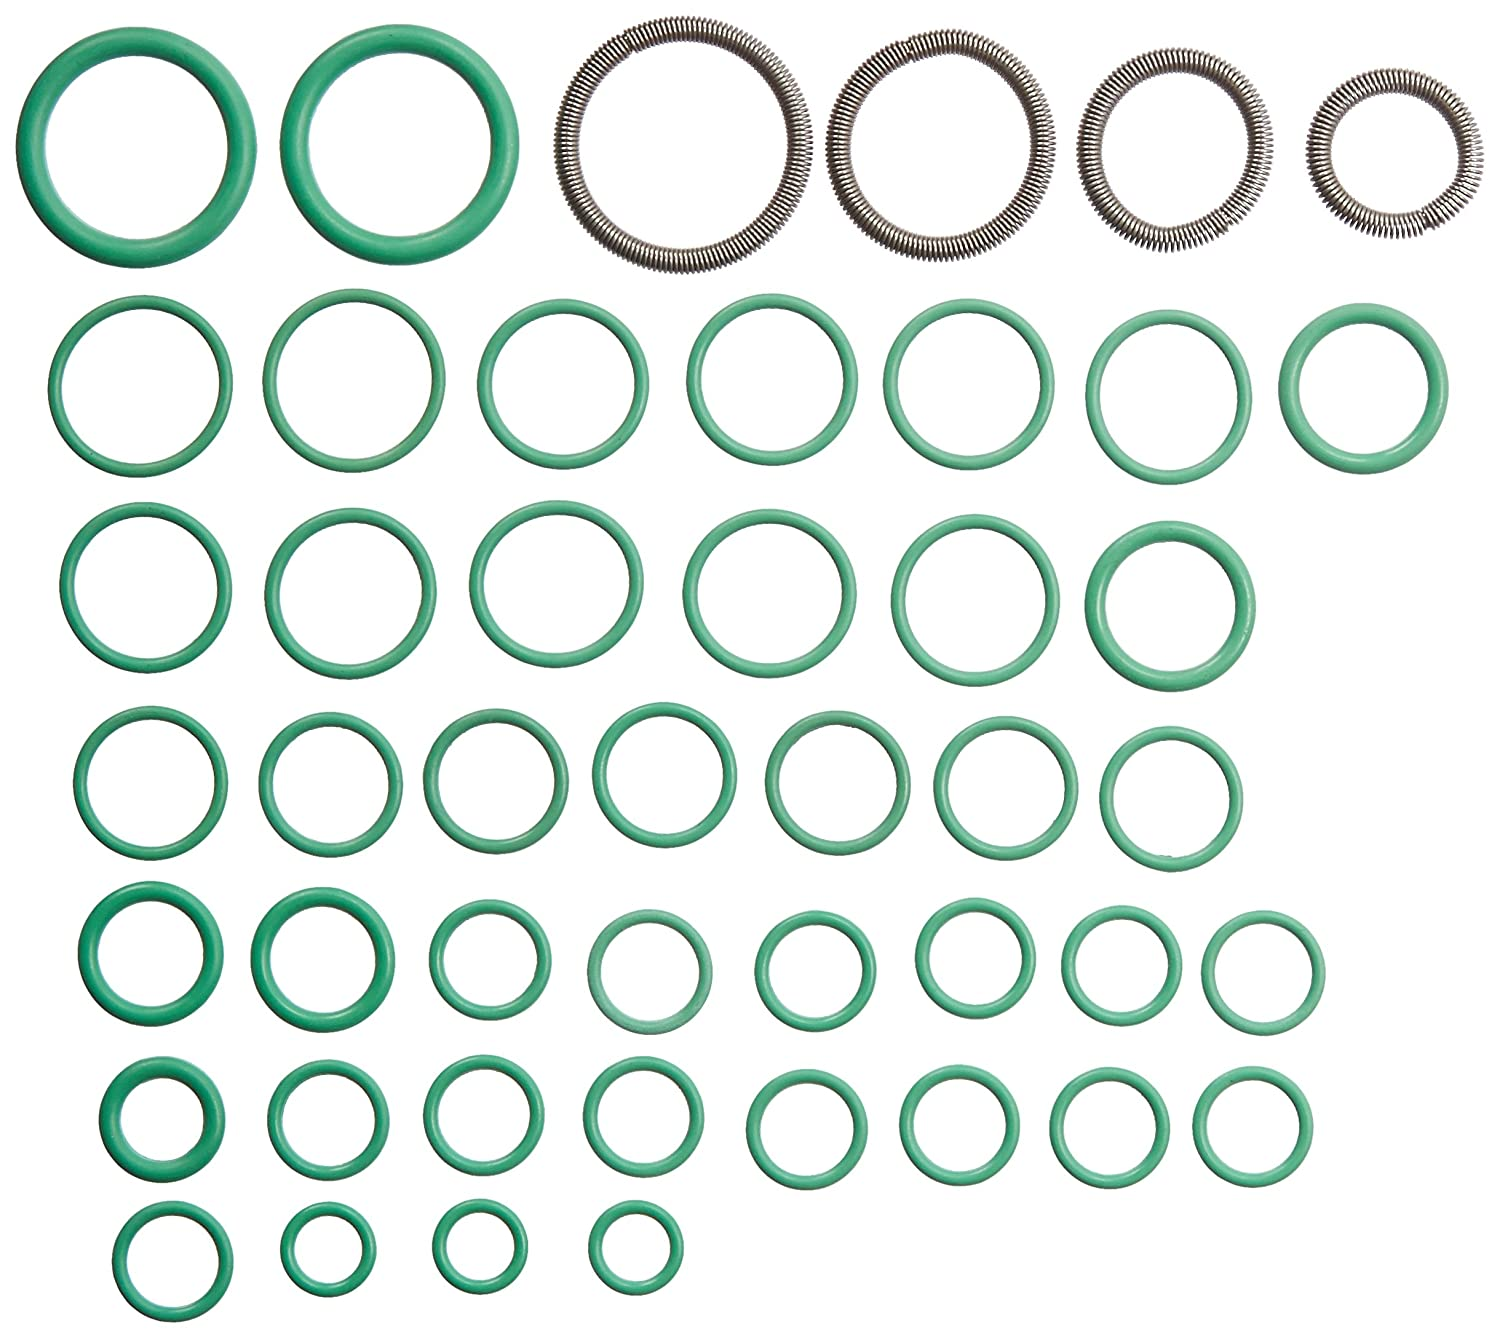 FOUR SEASONS DIVISION 26722 O-RING & GASKET